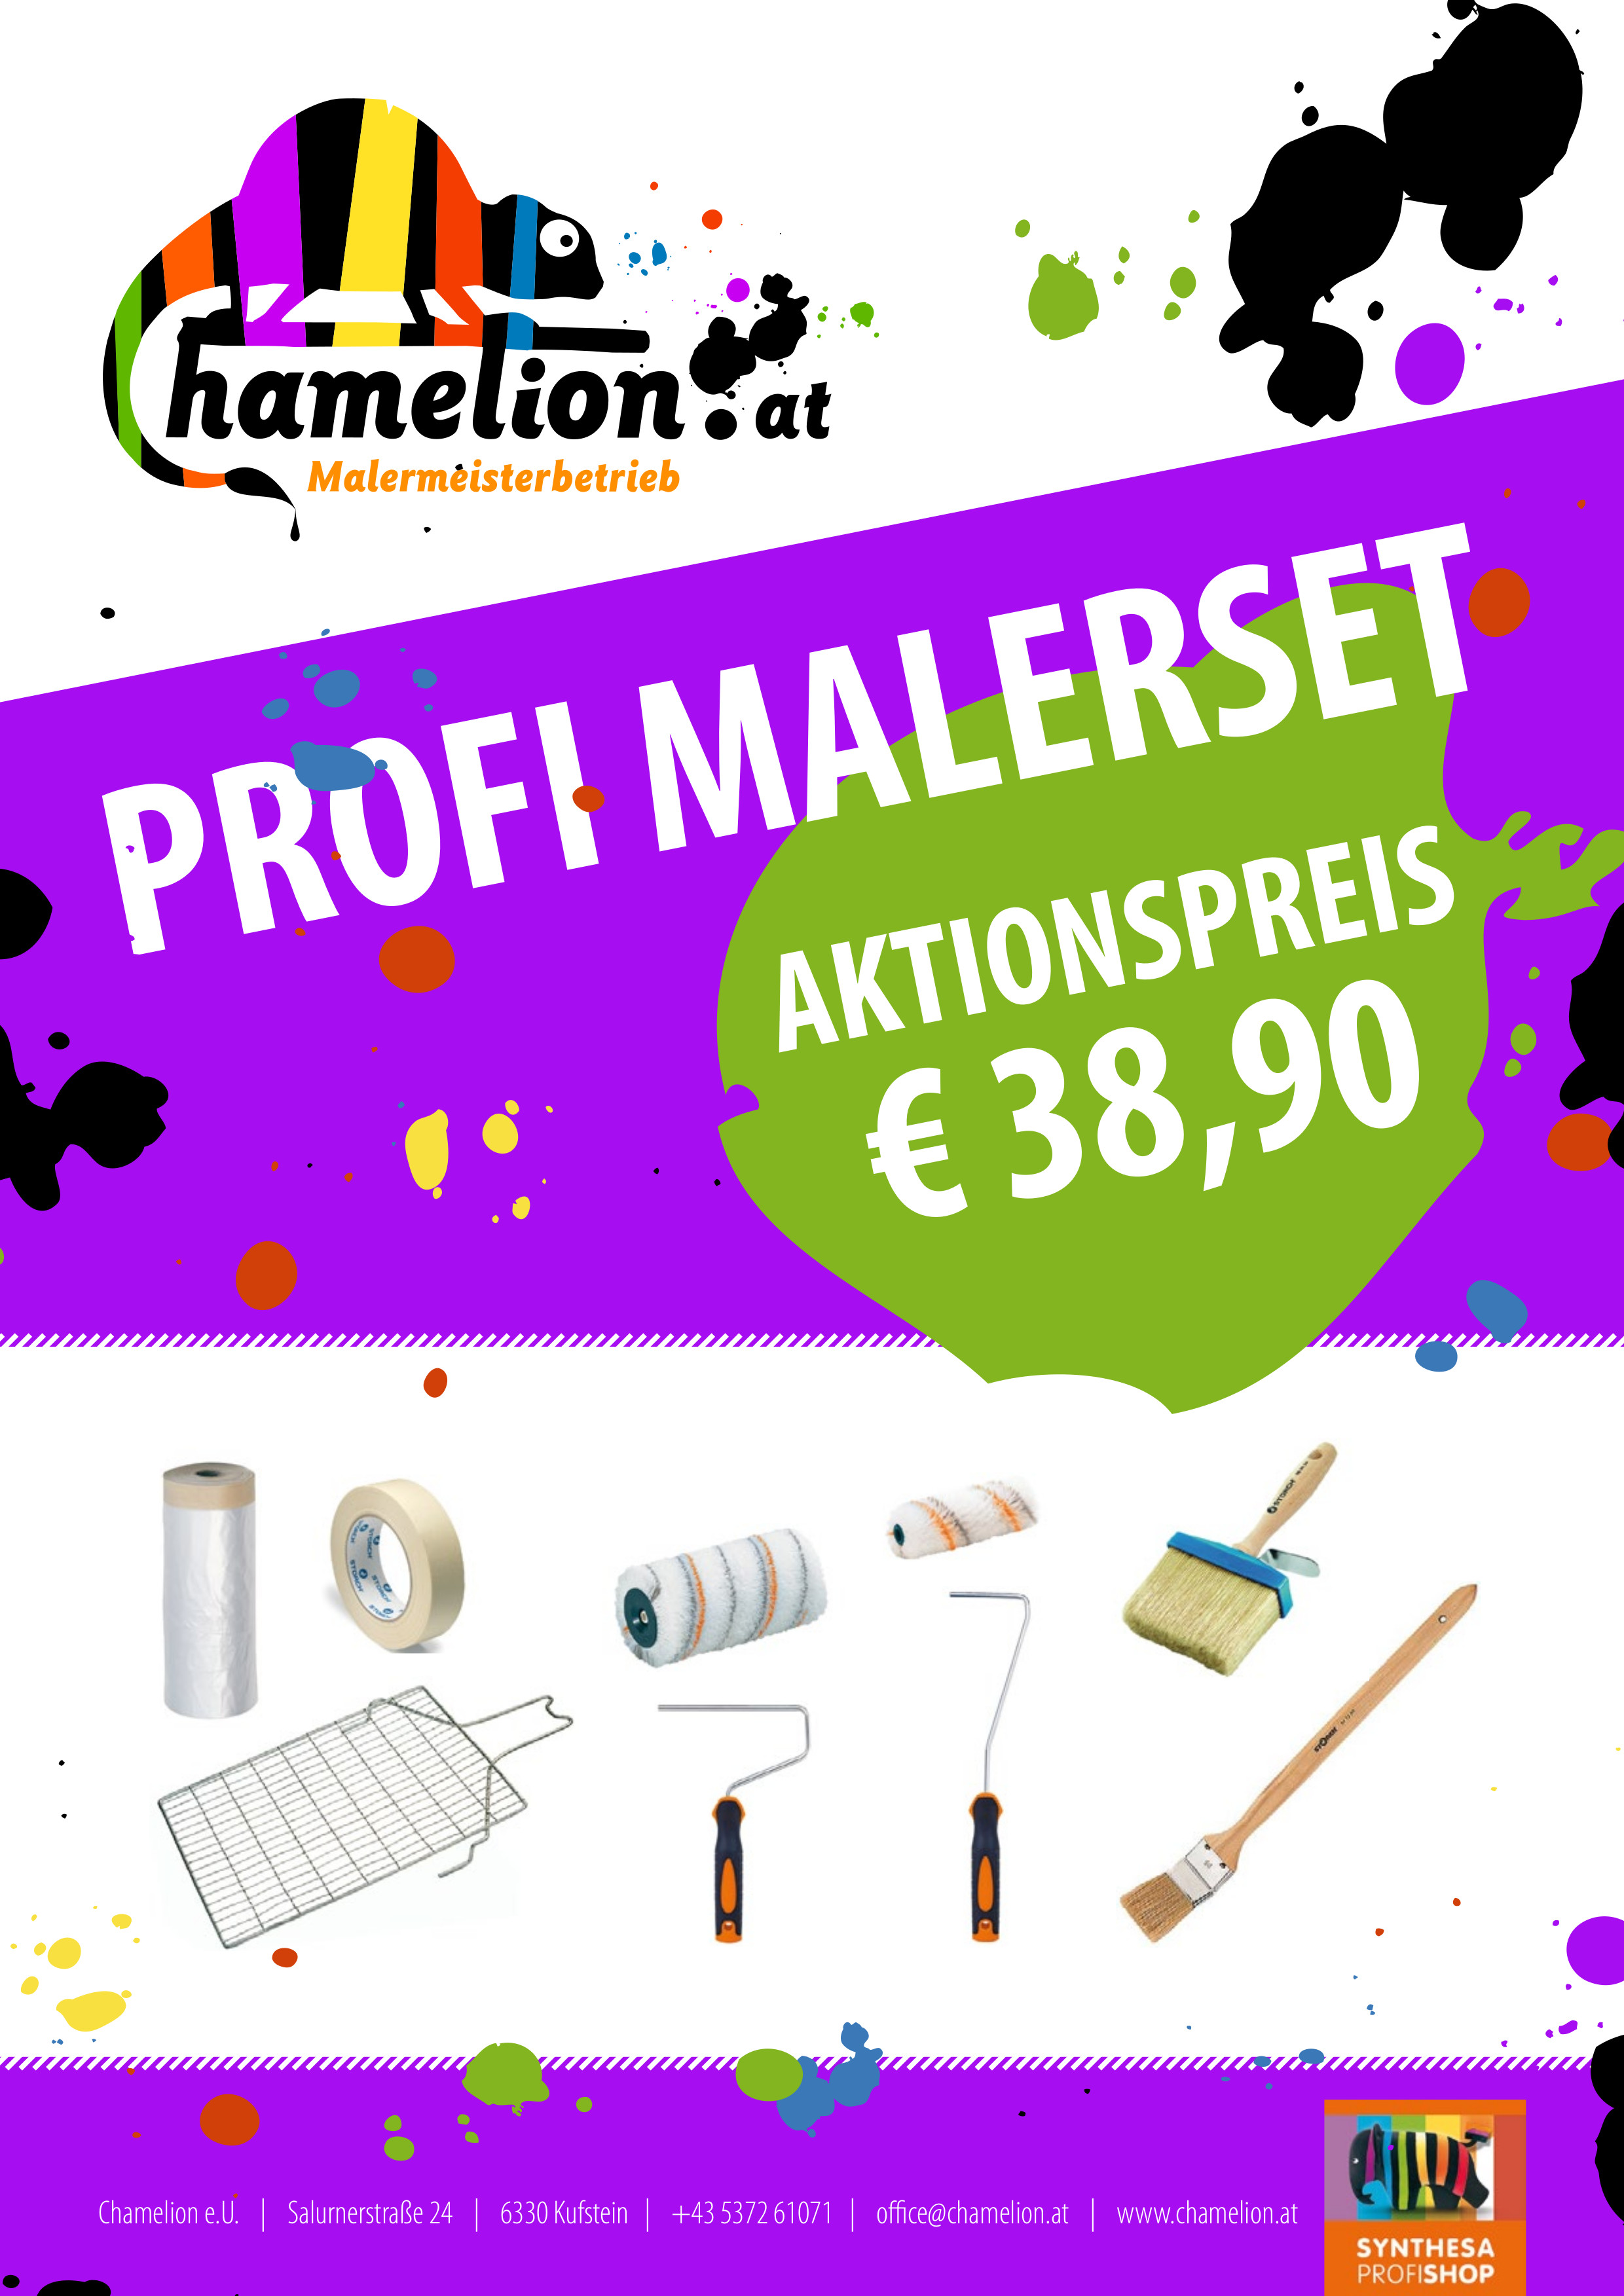 Aktion Profi Malerset